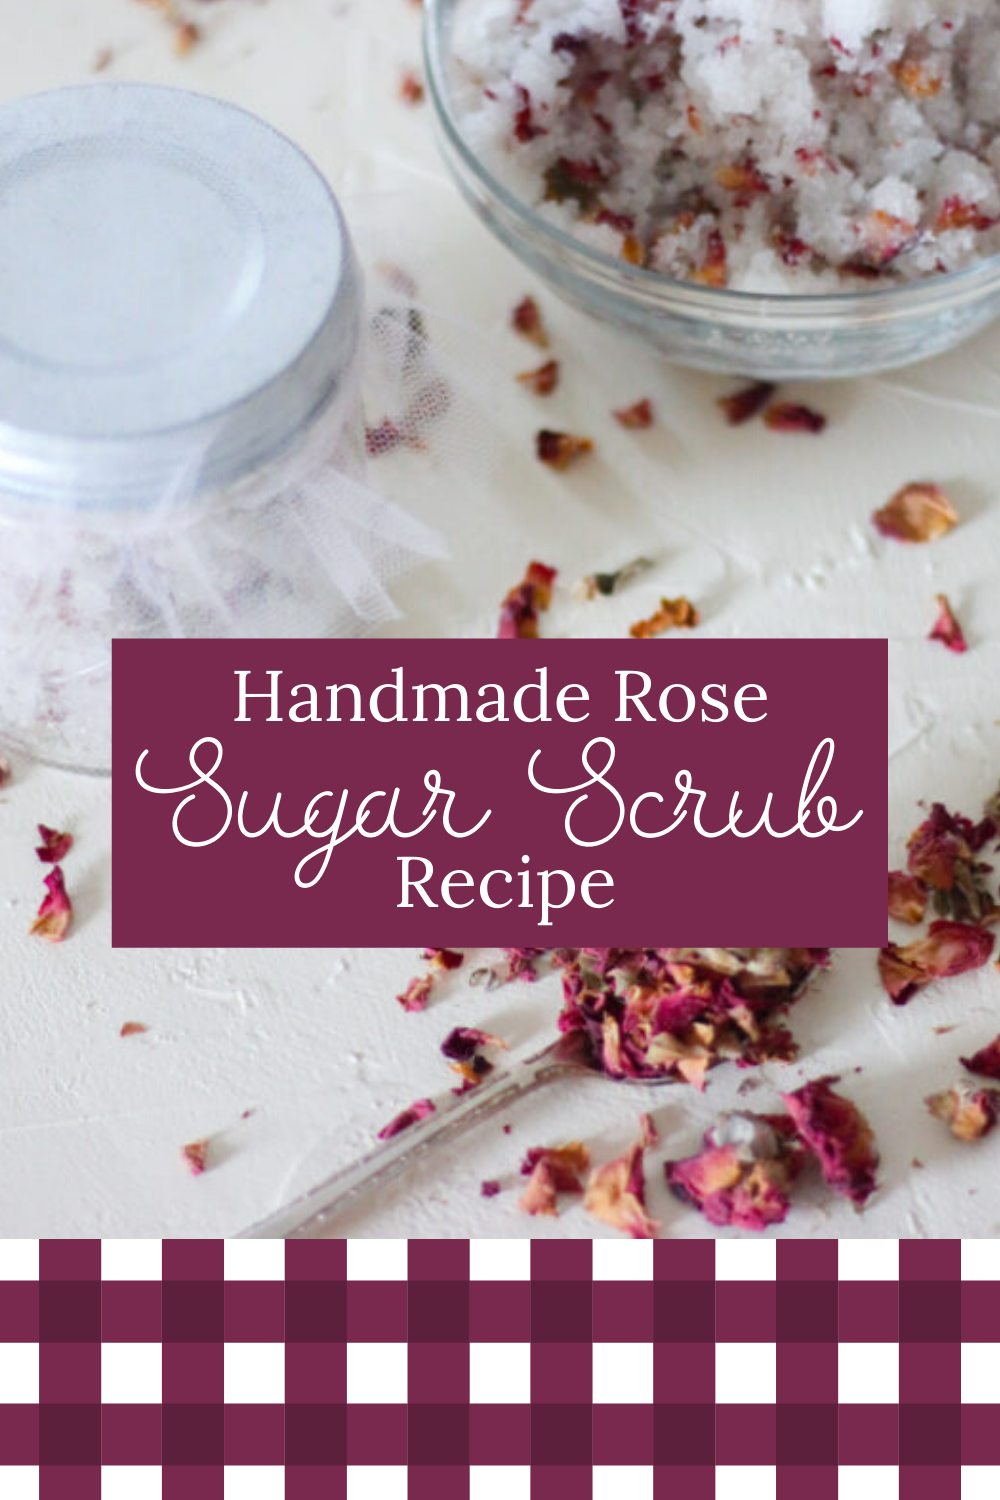 DIY Rose Sugar Scrub Recipe - Valentine's Day Gift Idea    Click now to get the recipe for this bea